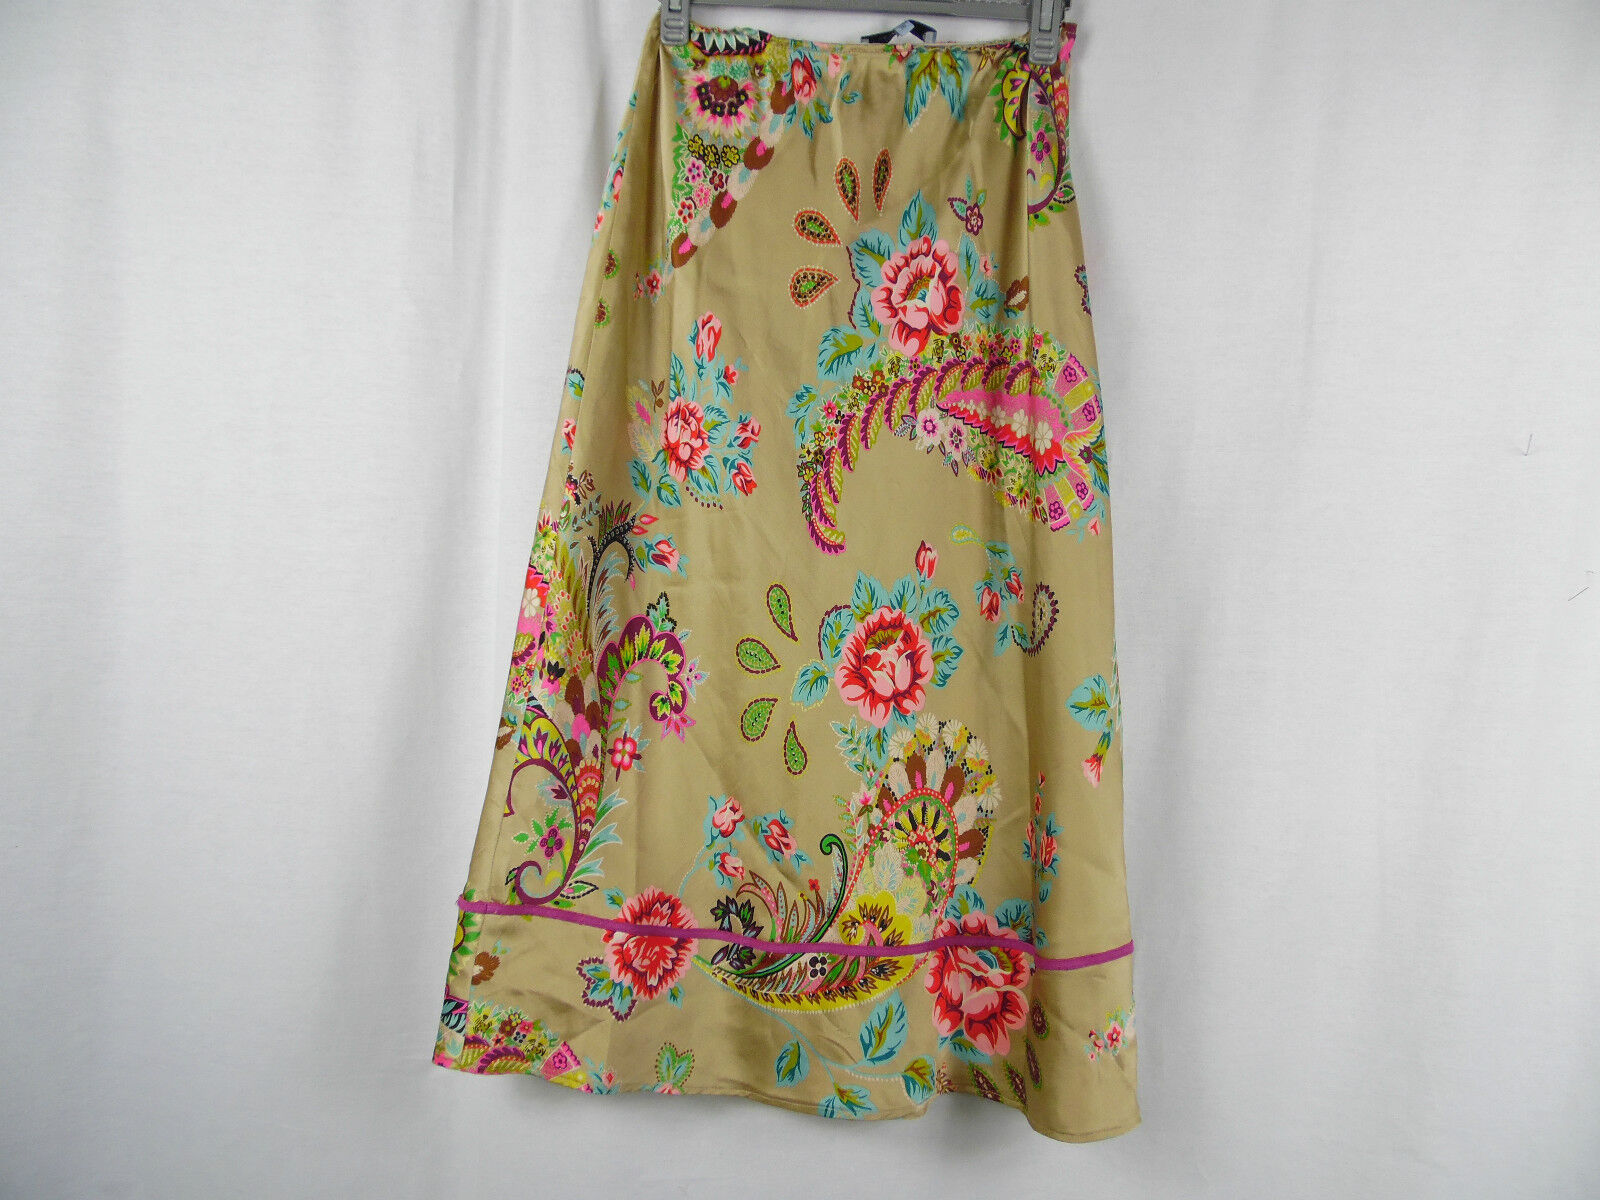 Skirt Darel bluee Size 36 Not too good condition